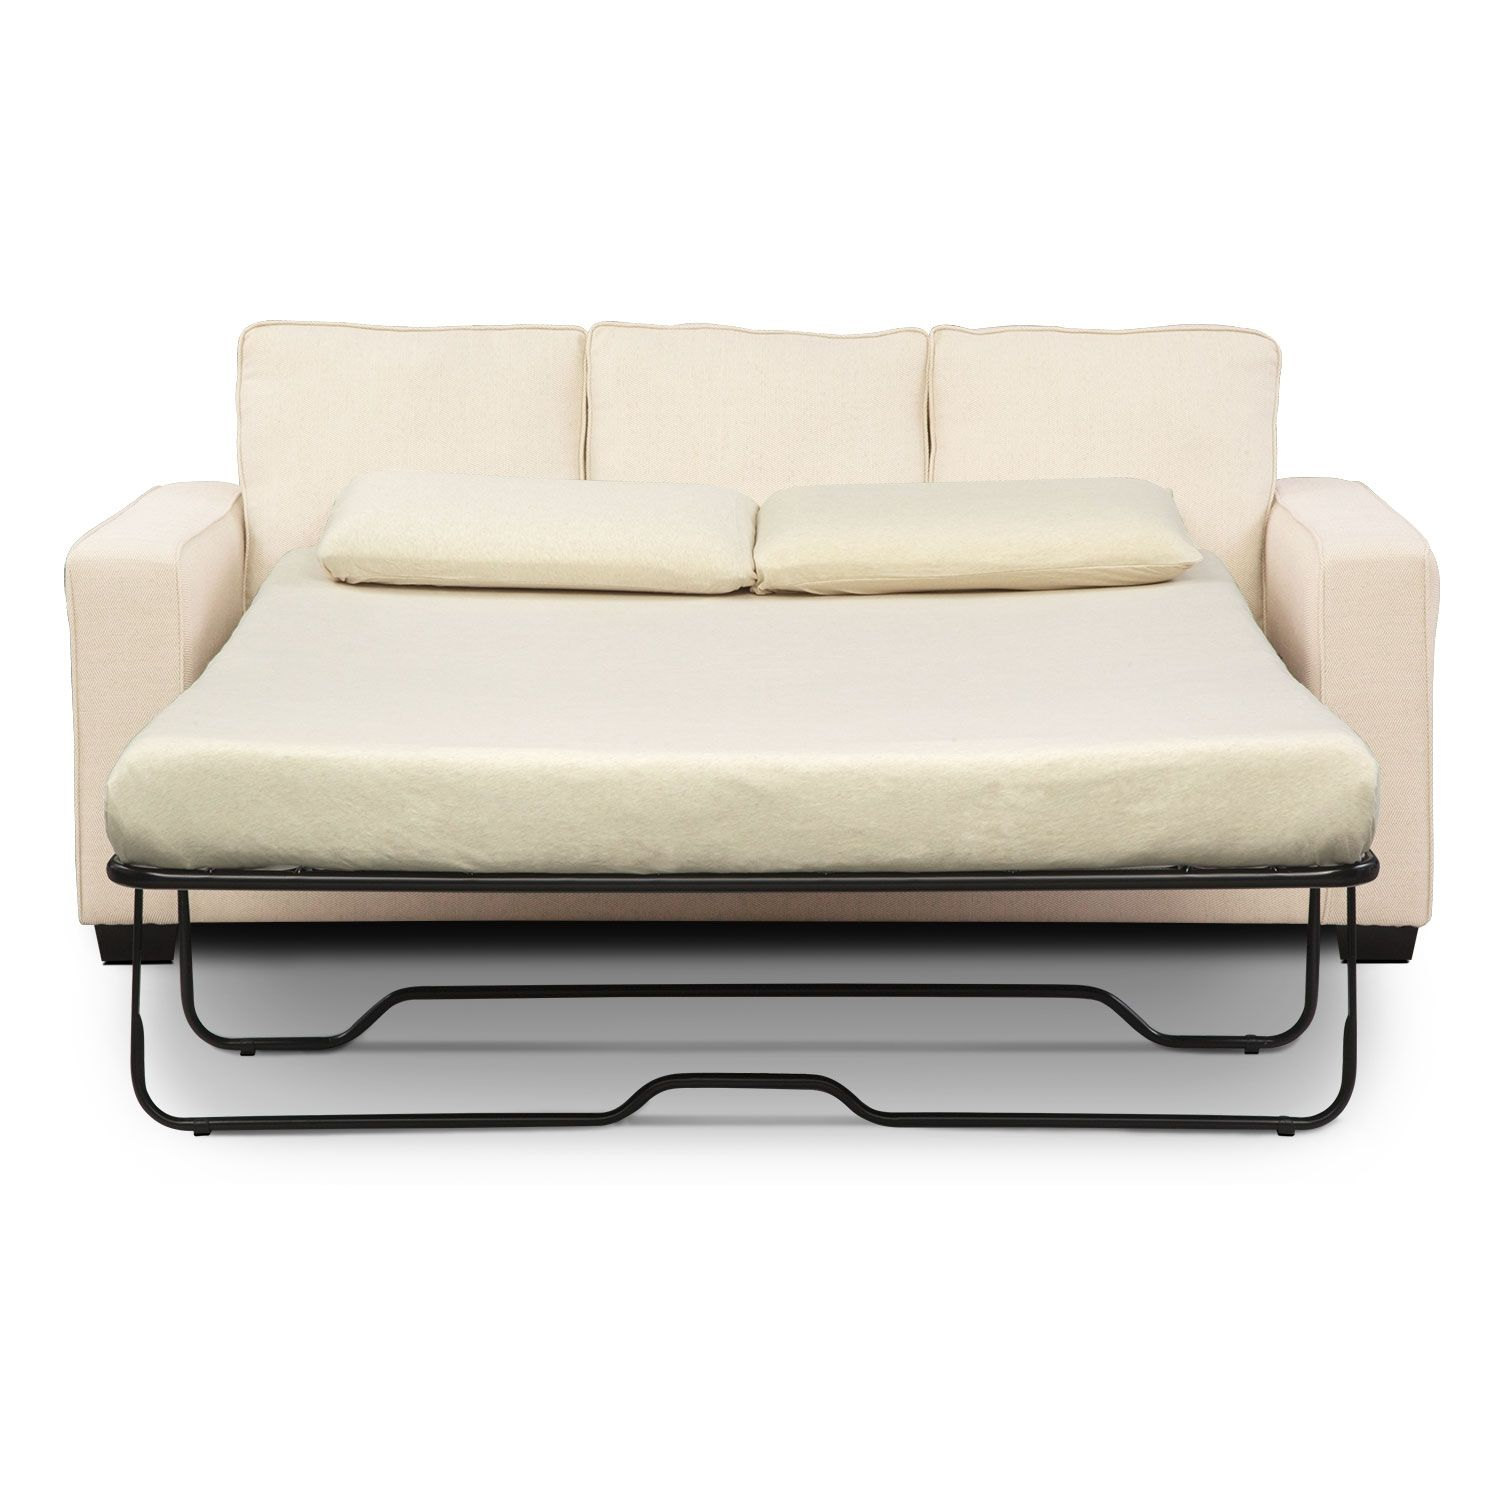 Sterling Beige Queen Innerspring Sleeper Sofa w/ Chaise   Value City ...